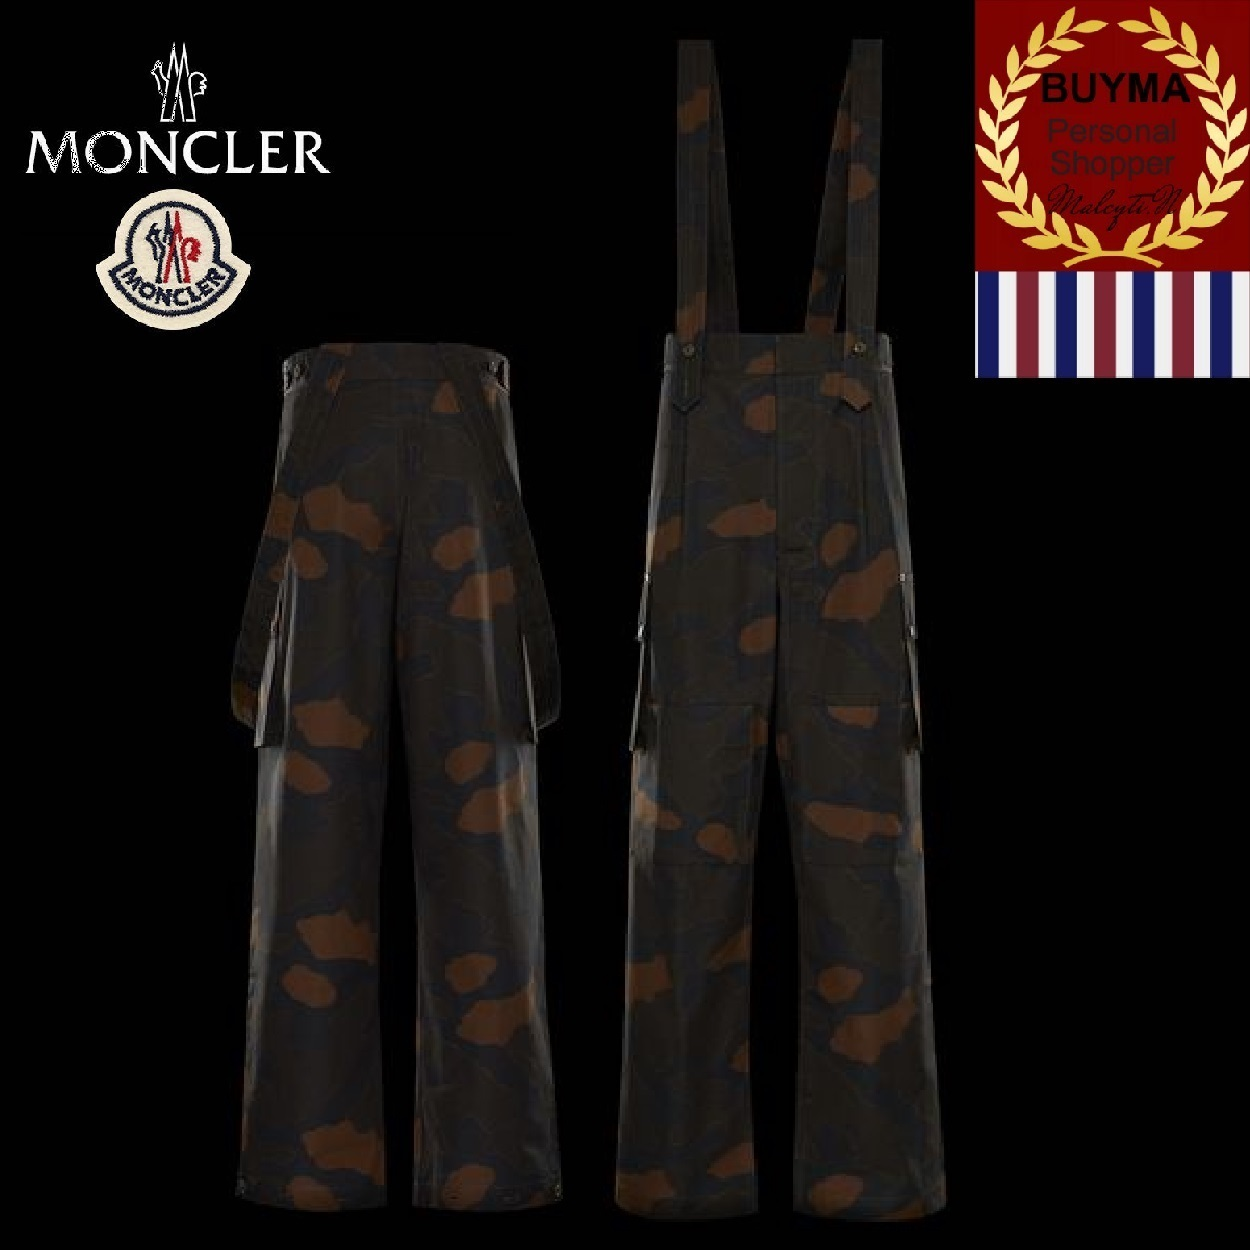 【MONCLER】CASUAL PANTS 迷彩柄 サスペンダー付きパンツ